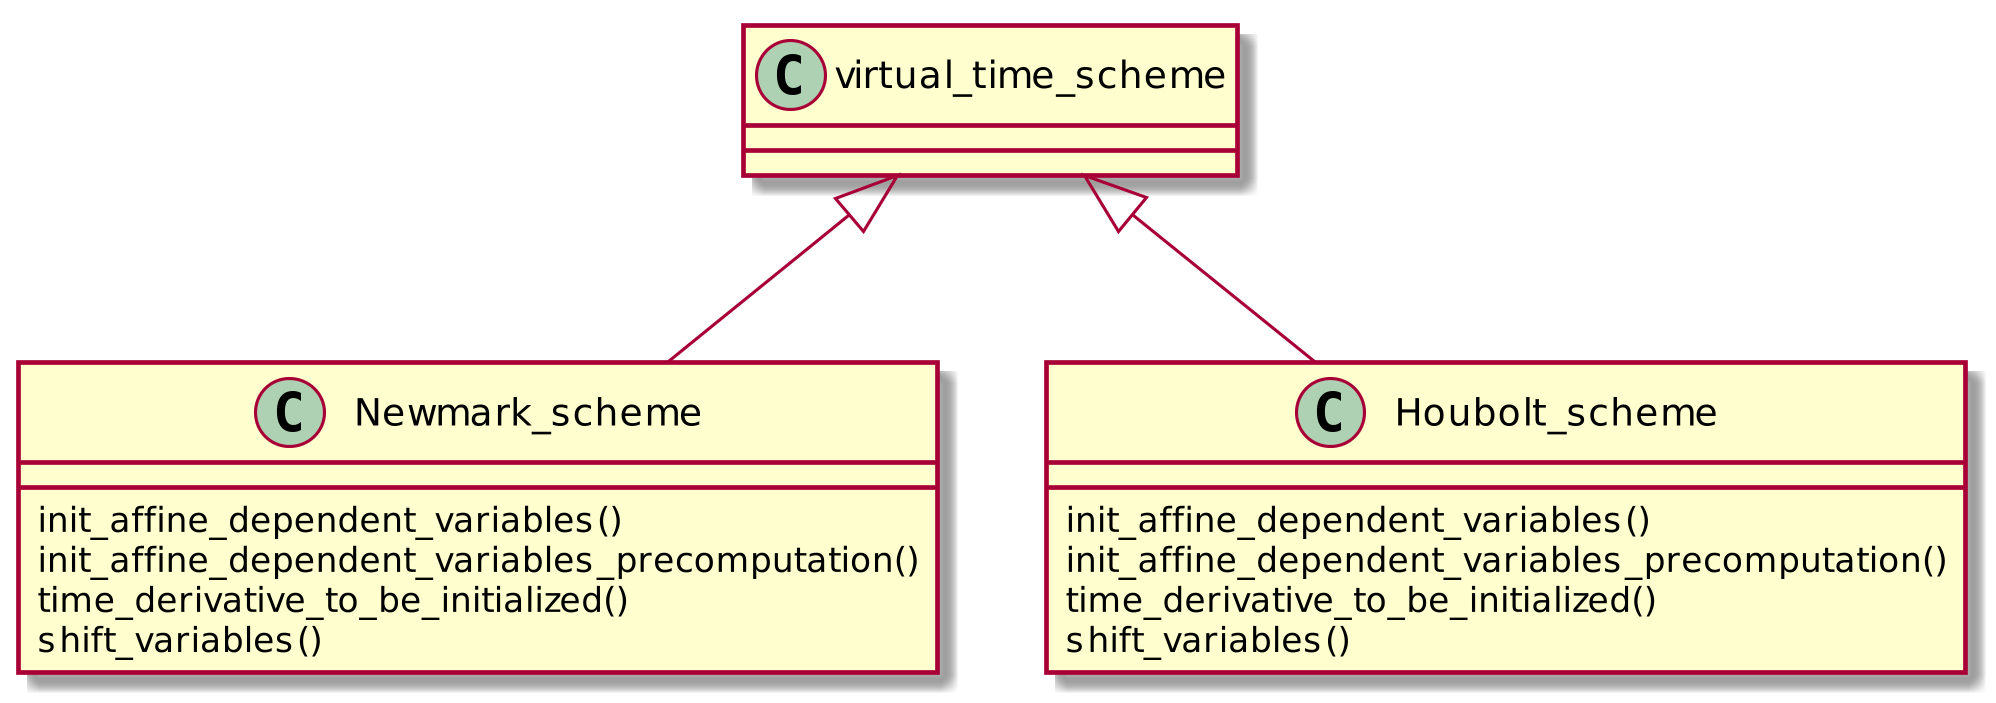 time_scheme.png